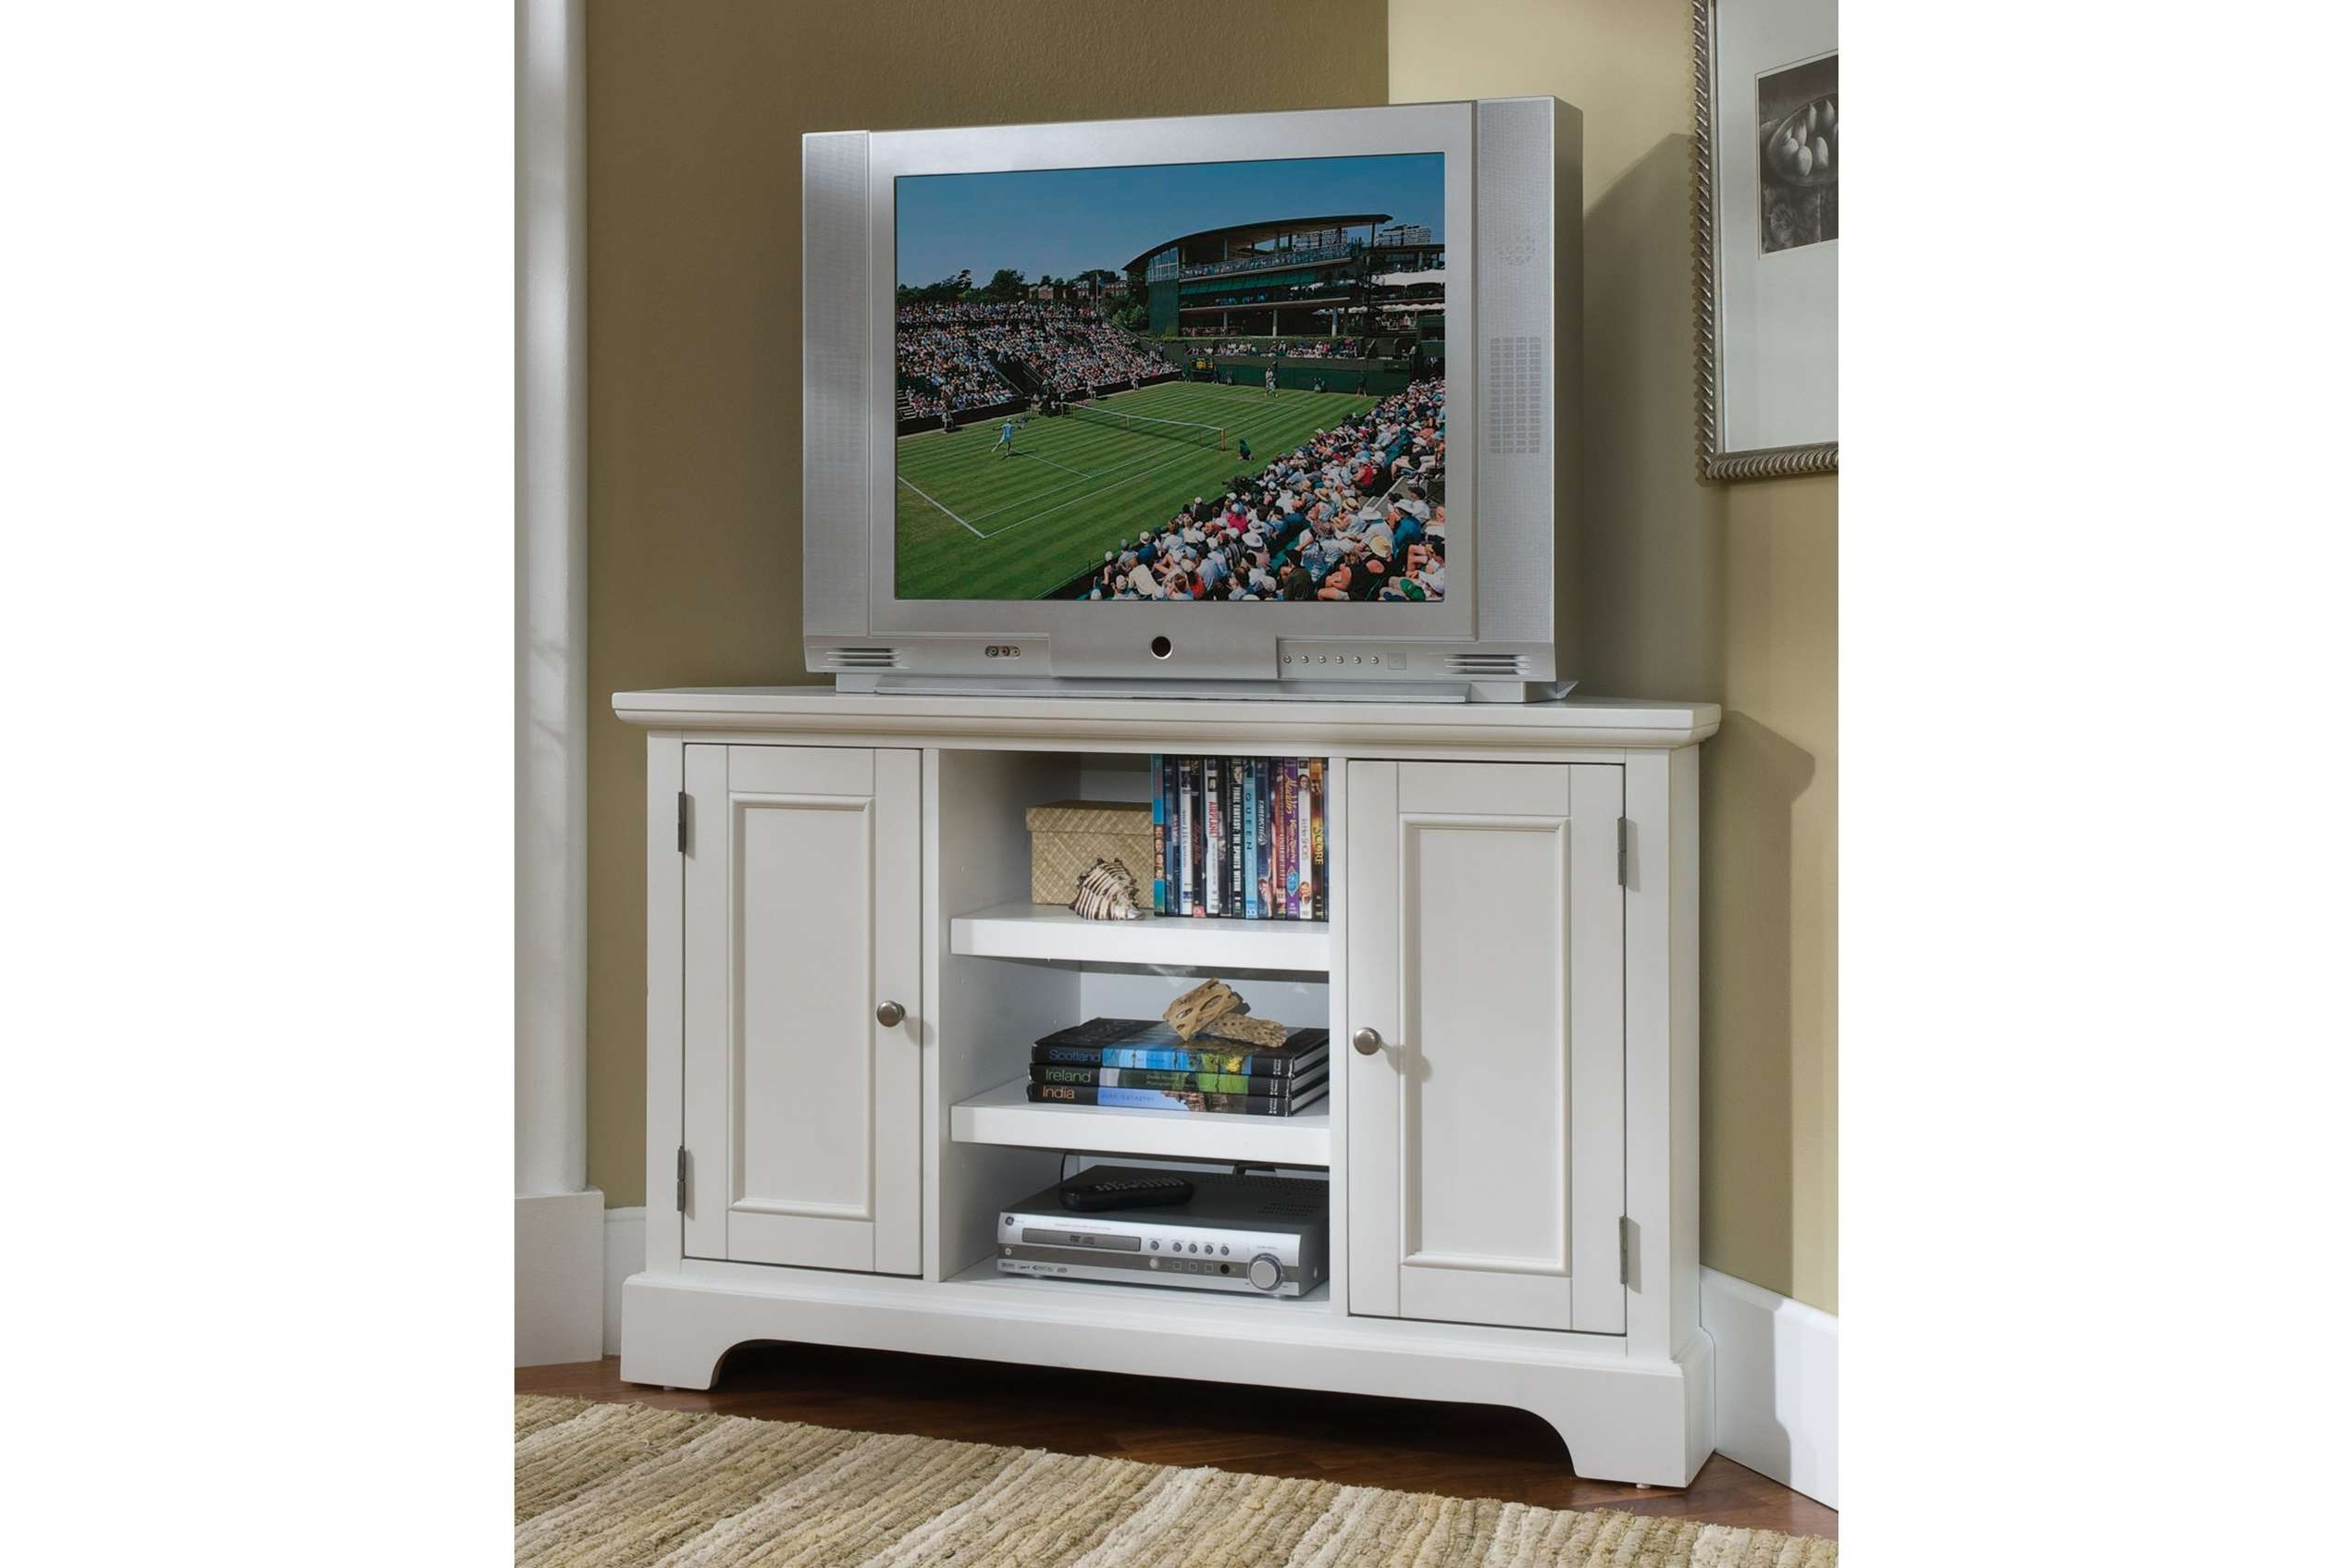 Tallner Tv Cabinet Stand With Doors Ikea For Bedroom – Tall Corner In White Wood Corner Tv Stands (View 10 of 15)